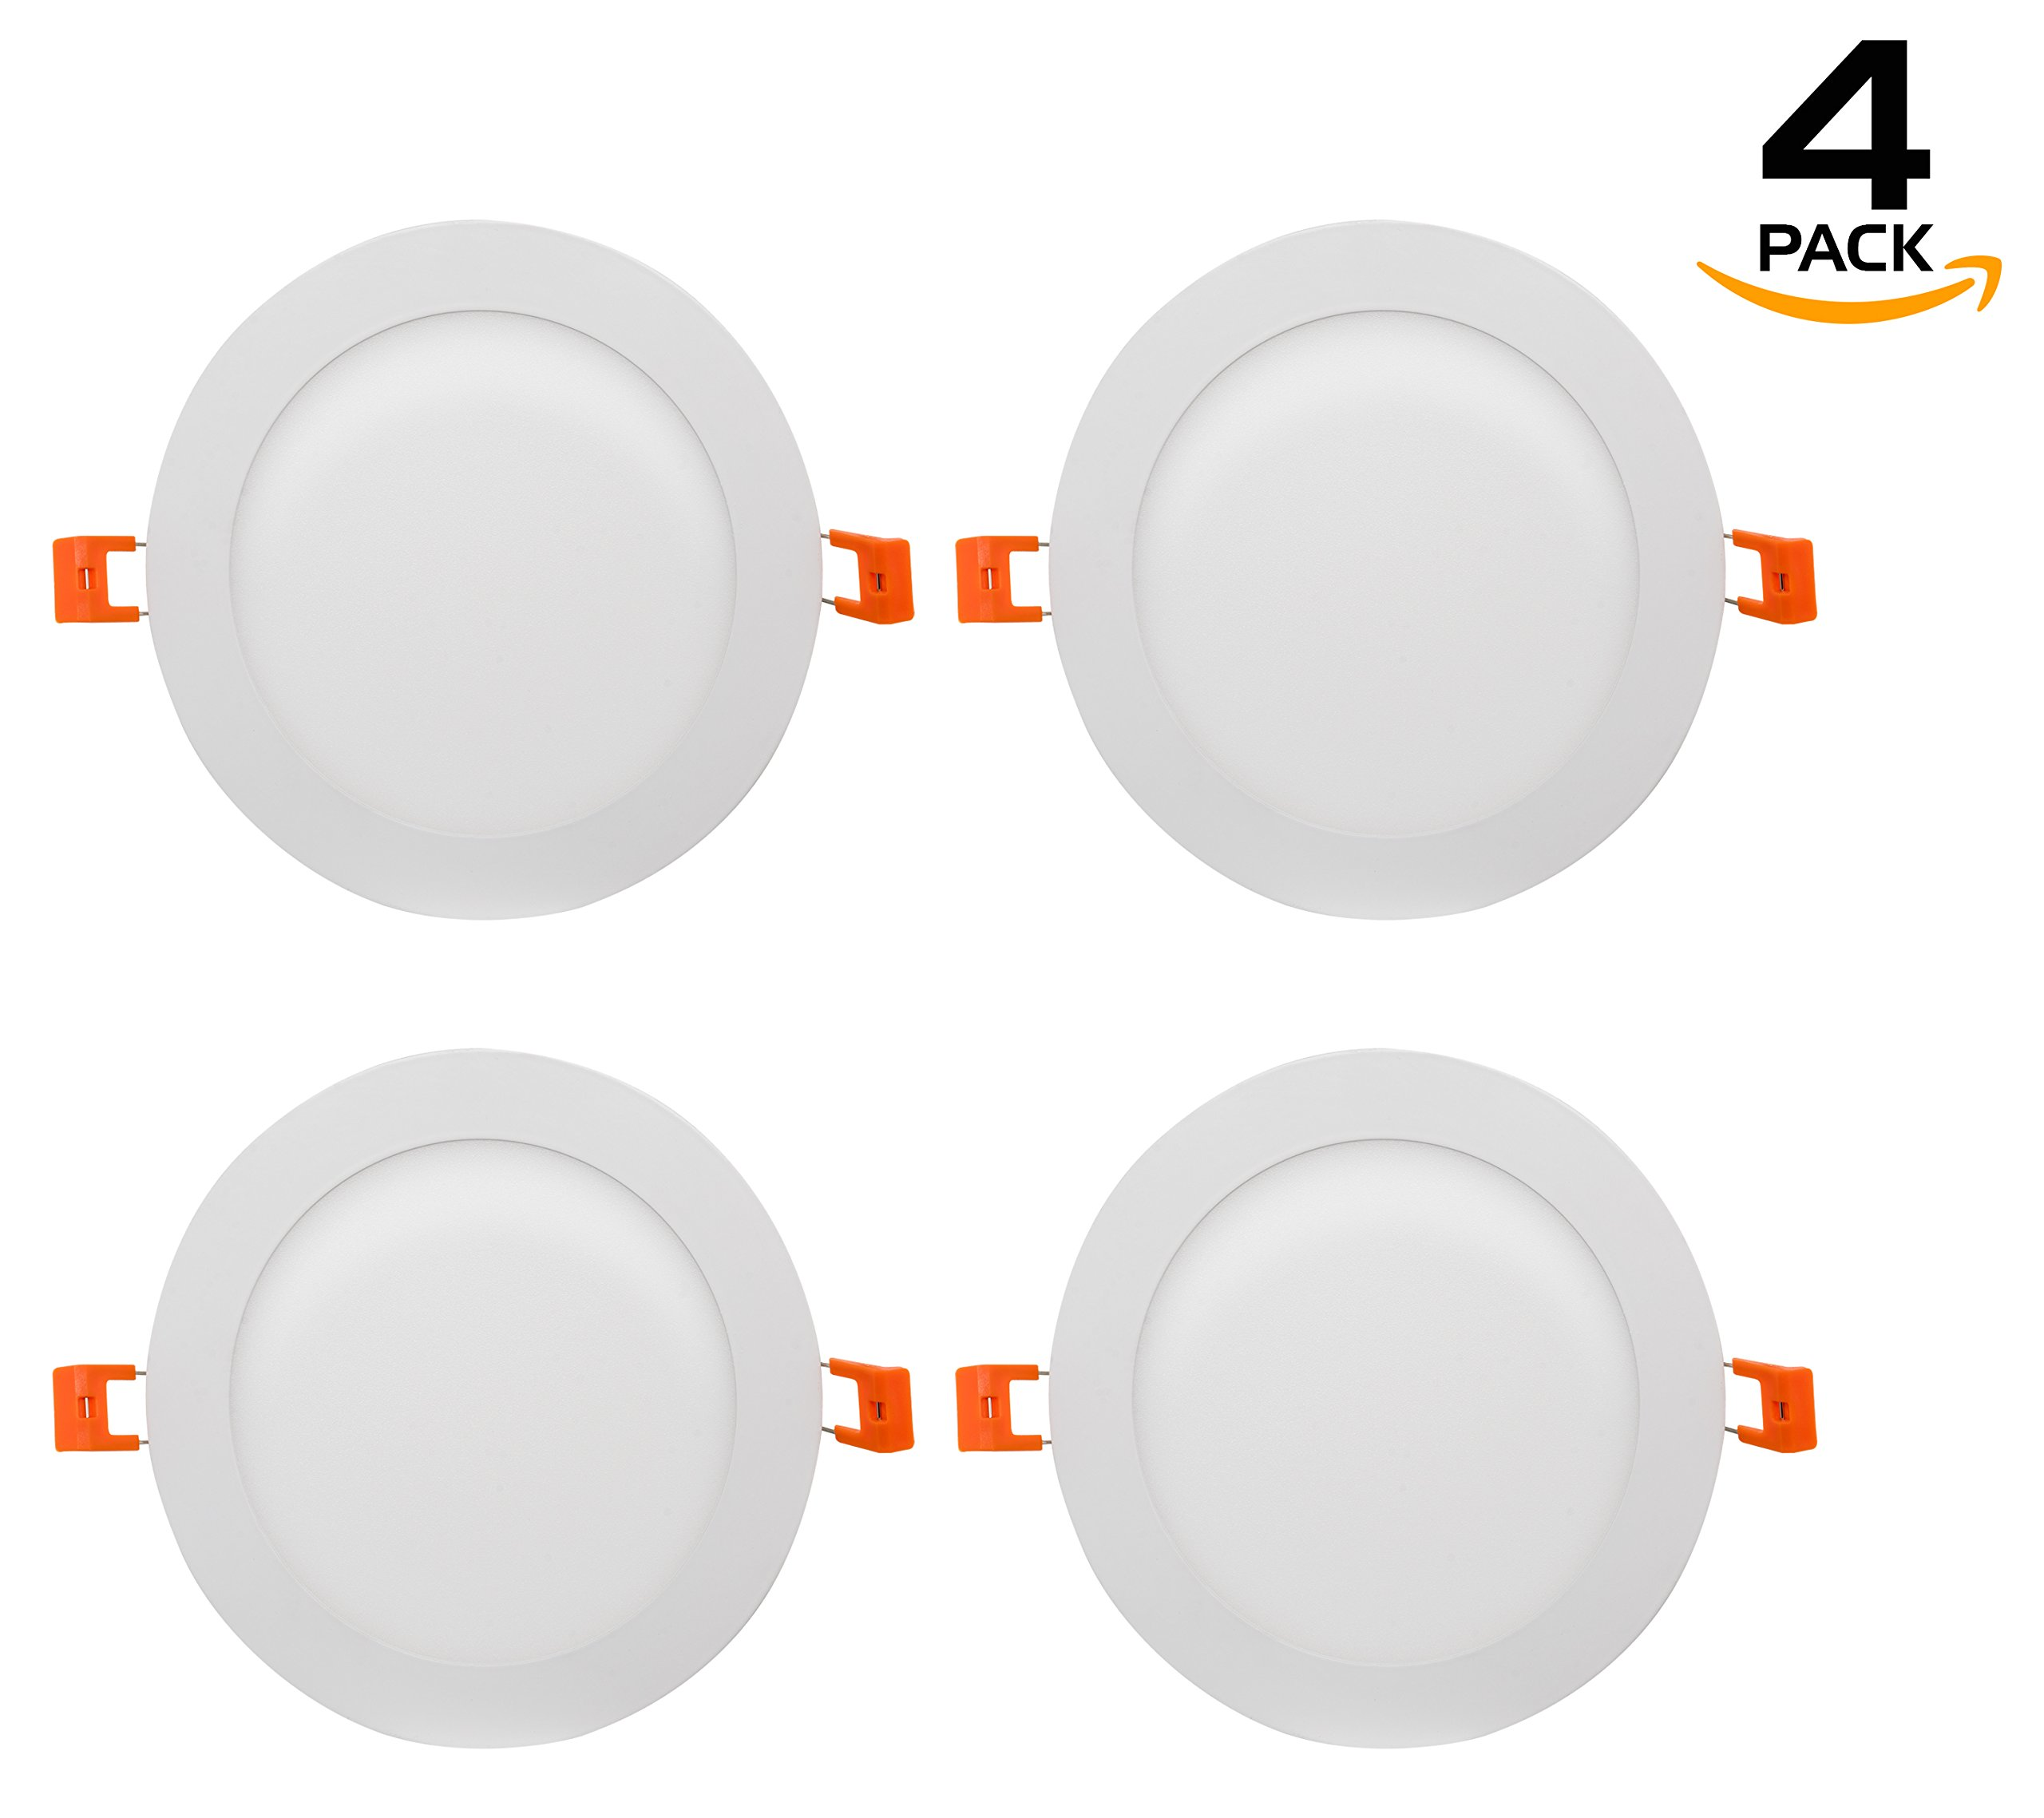 Westgate Lighting 15W 6'' Inch Ultra Thin Slim LED Recessed Light - Dimmable Retrofit Downlight Smooth Trim - Junction Box Included - No Housing Required - Ceiling Lights (4 Pack, 4000K Neutral White)